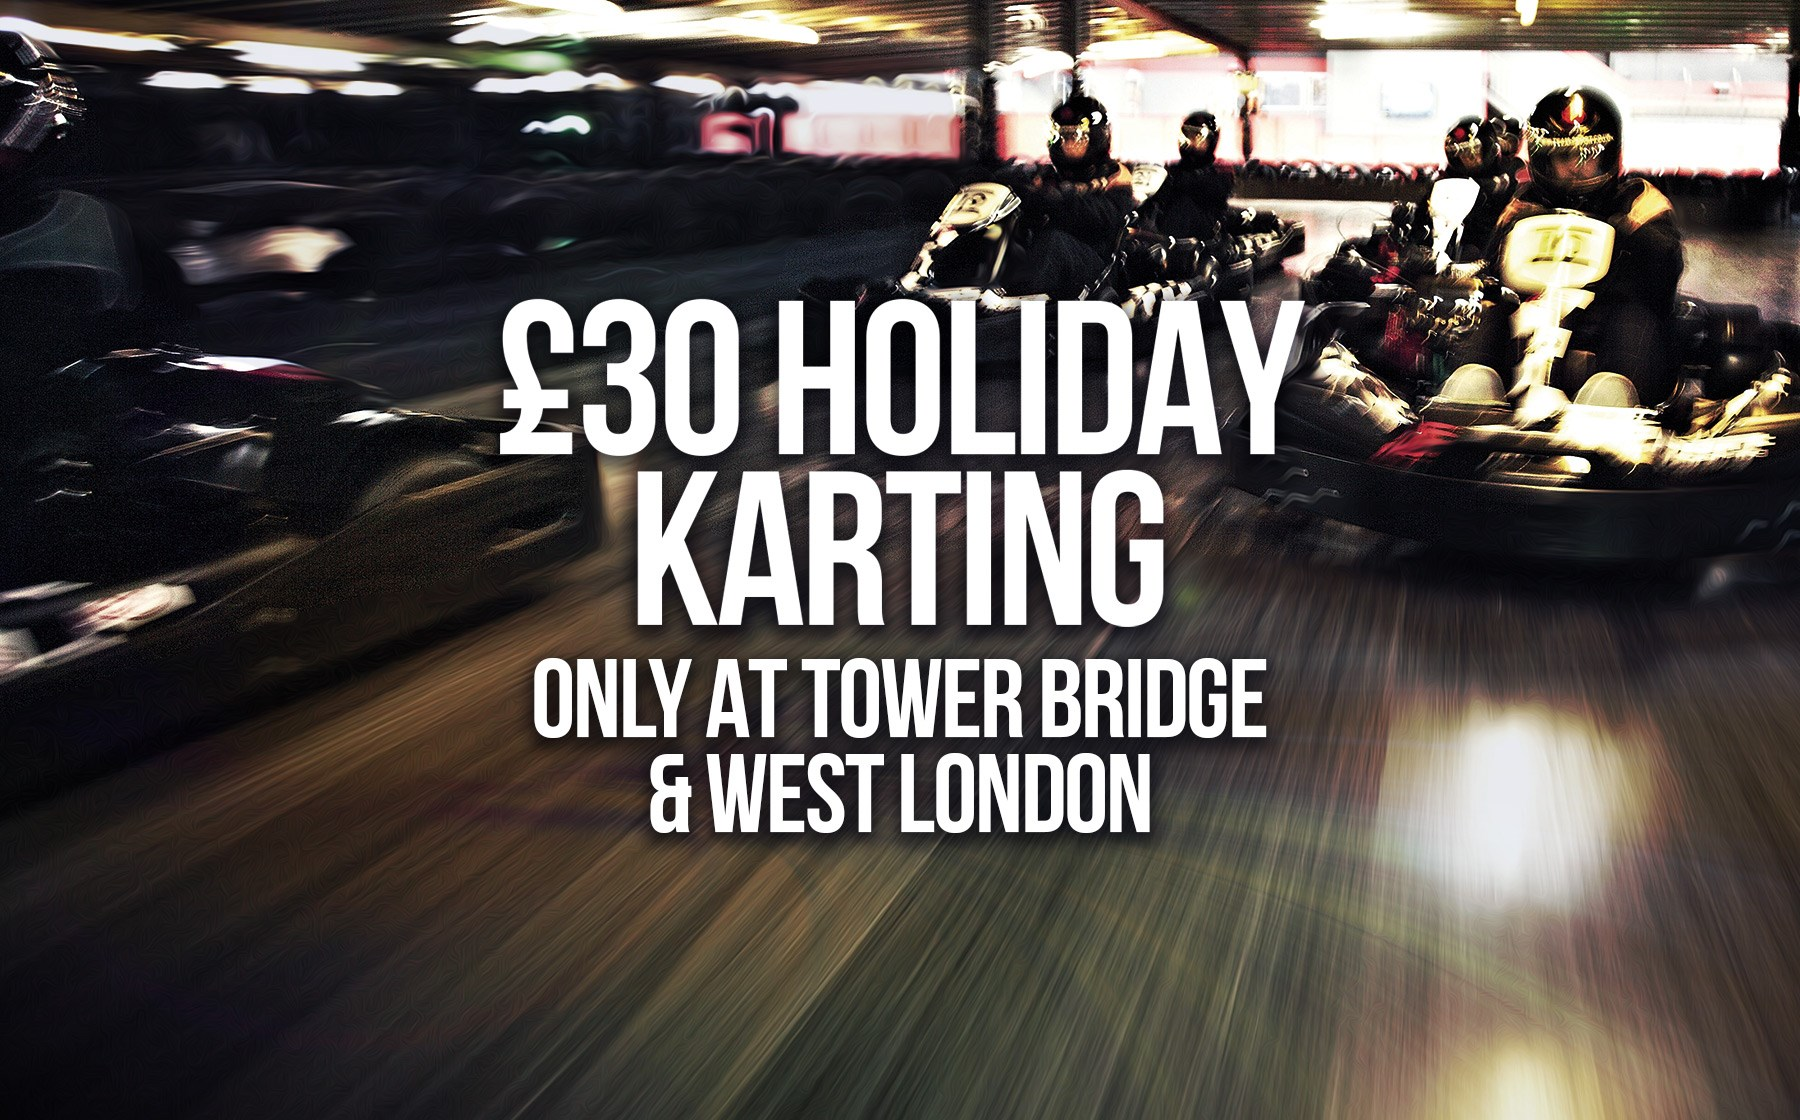 GO KARTING OFFERS - £30 Holiday Karting